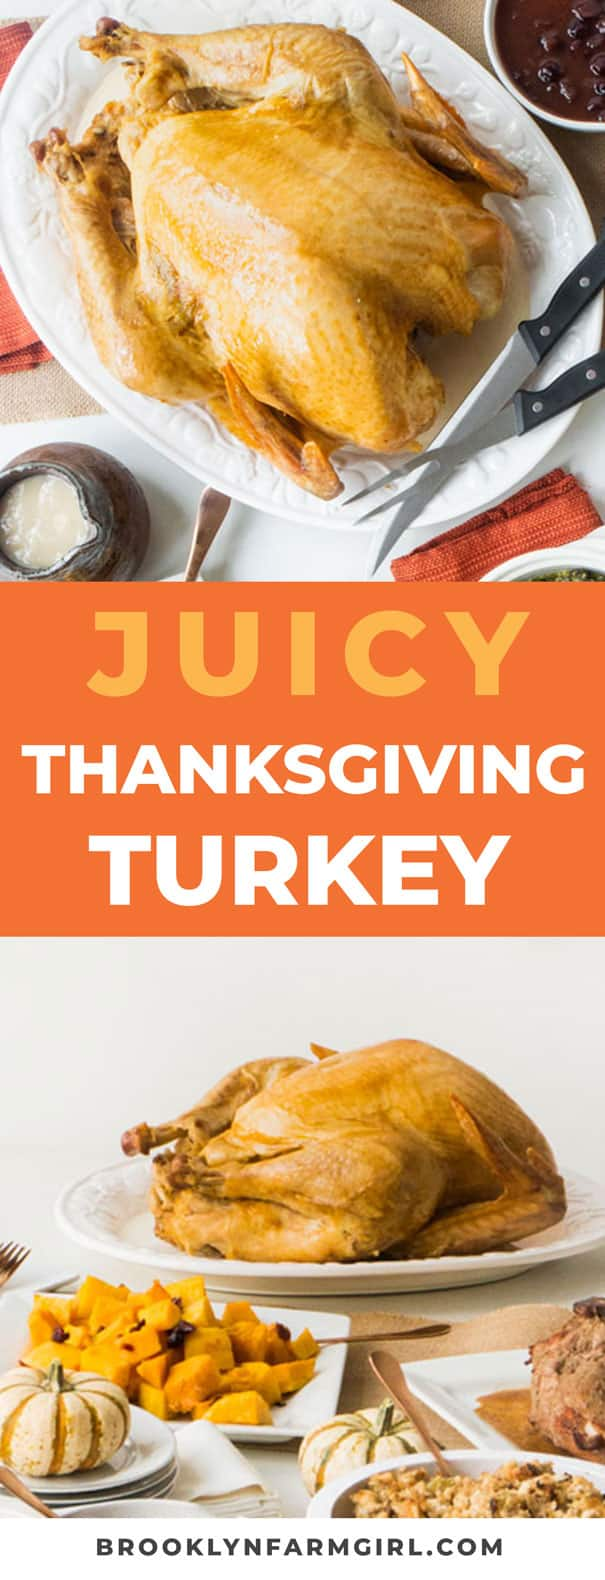 This is an easy juicy Thanksgiving Turkey recipe.   Nothing fancy here, just the best homemade Thanksgiving turkey you can make!  The meat is so juicy, moist and full of flavor!